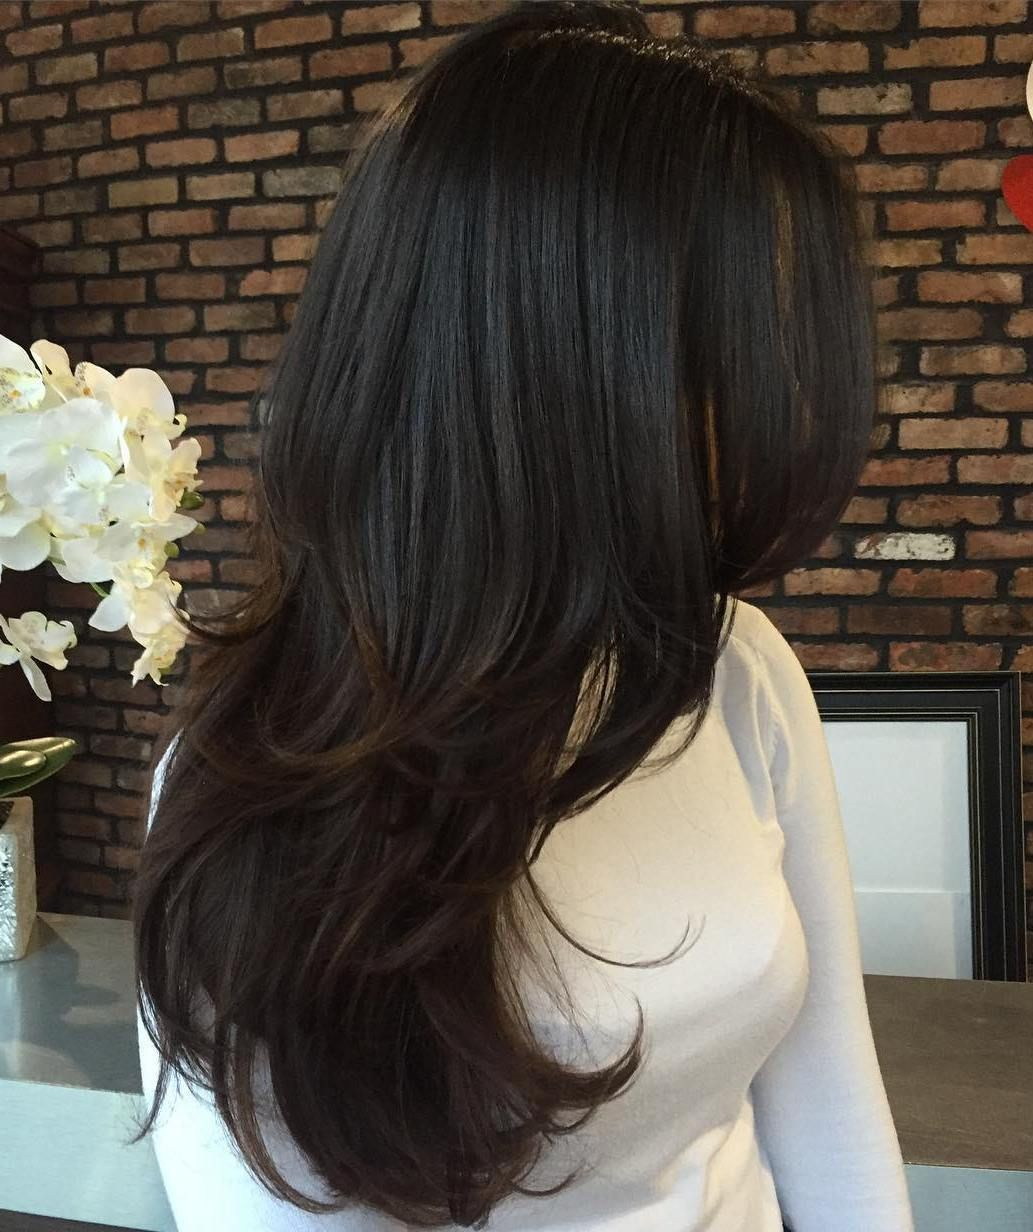 80 cute layered hairstyles and cuts for long hair | hair